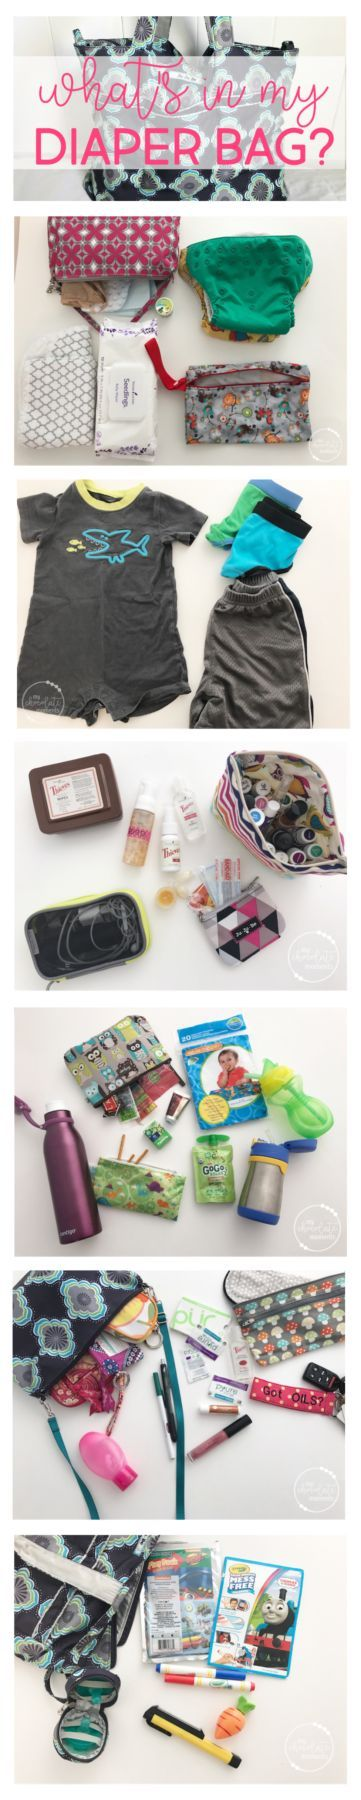 What's in my diaper bag? Ju-Ju-Be Super Be packed for an almost potty trained 3.5 year old and a 1.5 year old in cloth diapers   diaper bag essentials   diaper bag organization   JuJuBe diaper bags   Ju-Ju-Be Super Be packing   cloth diapers